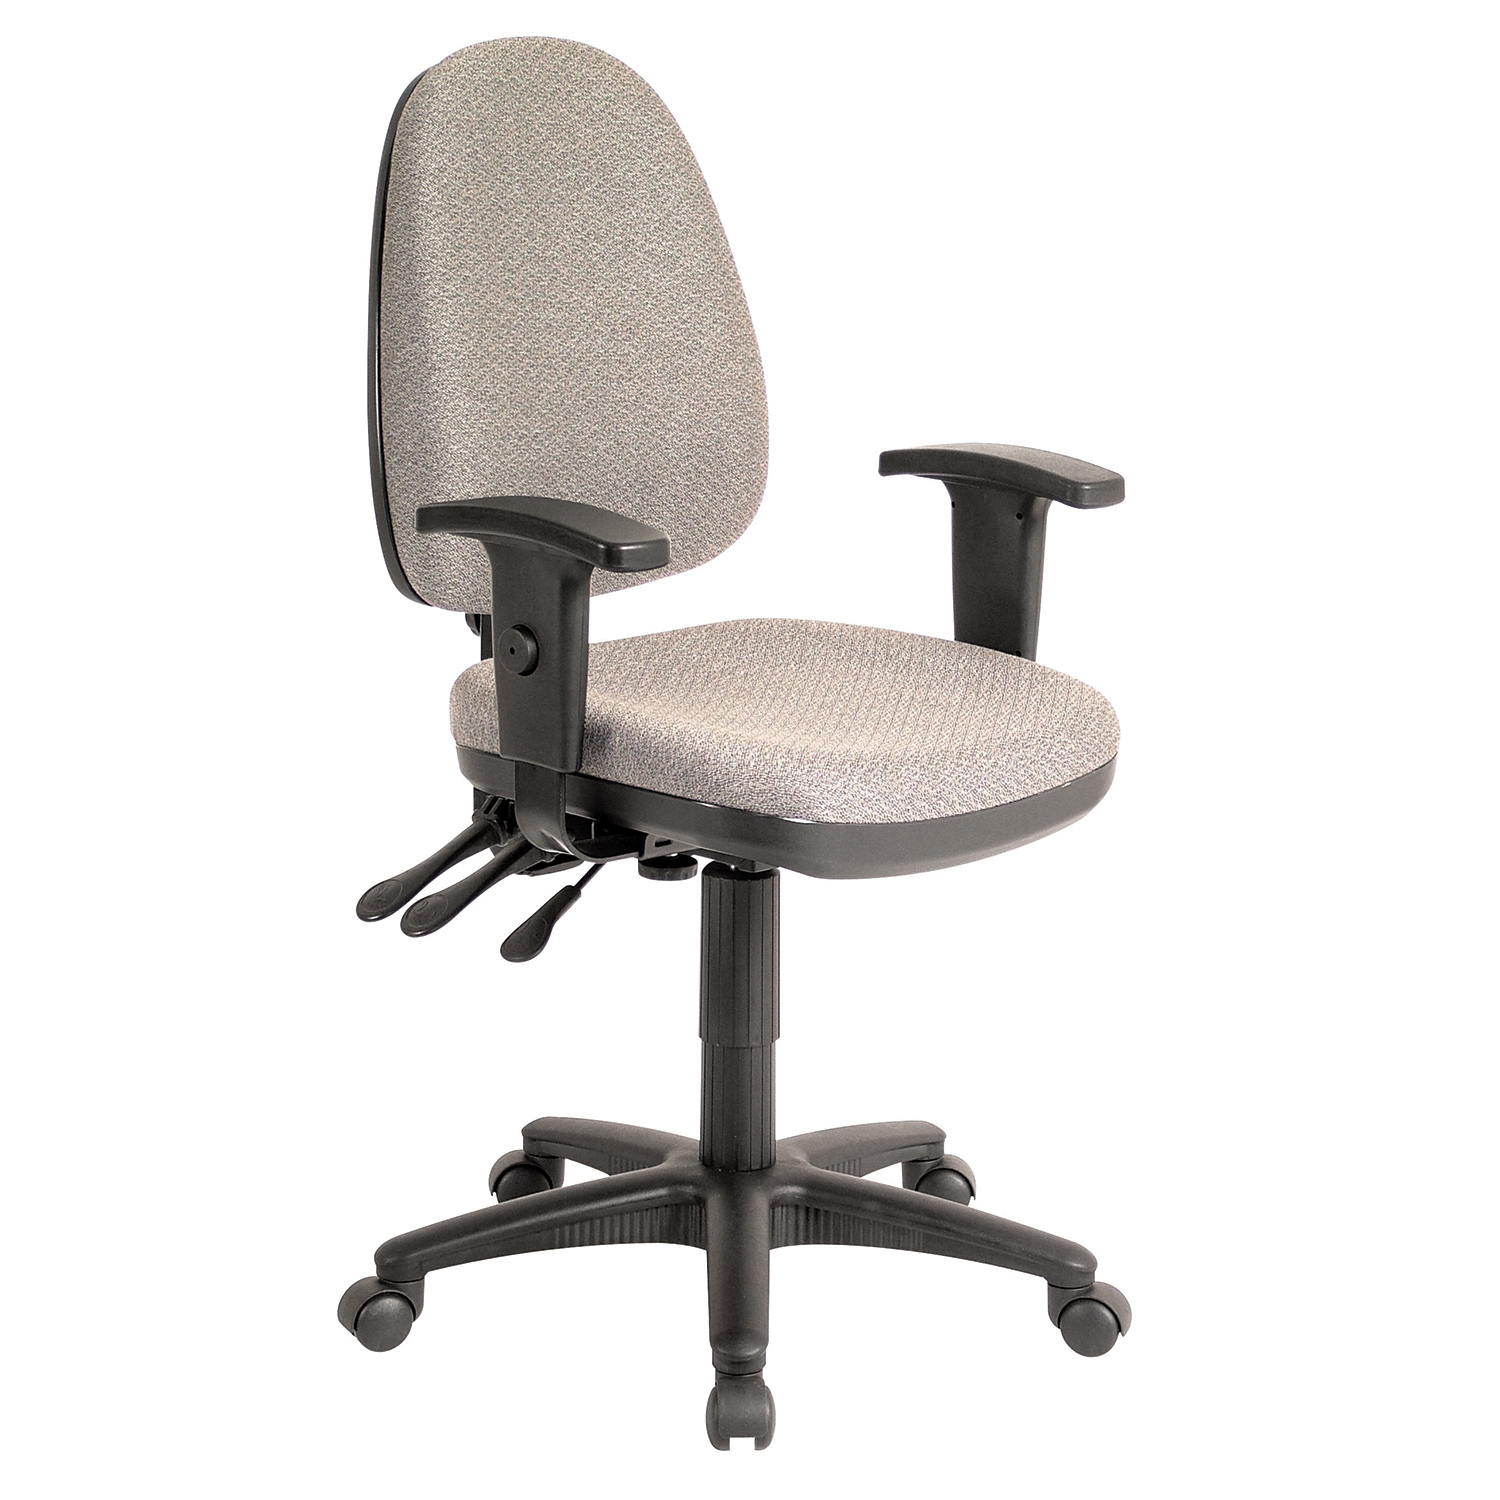 Realspace Chairs Realspace Pro 8000 Series Multifunction Task Chair Grand